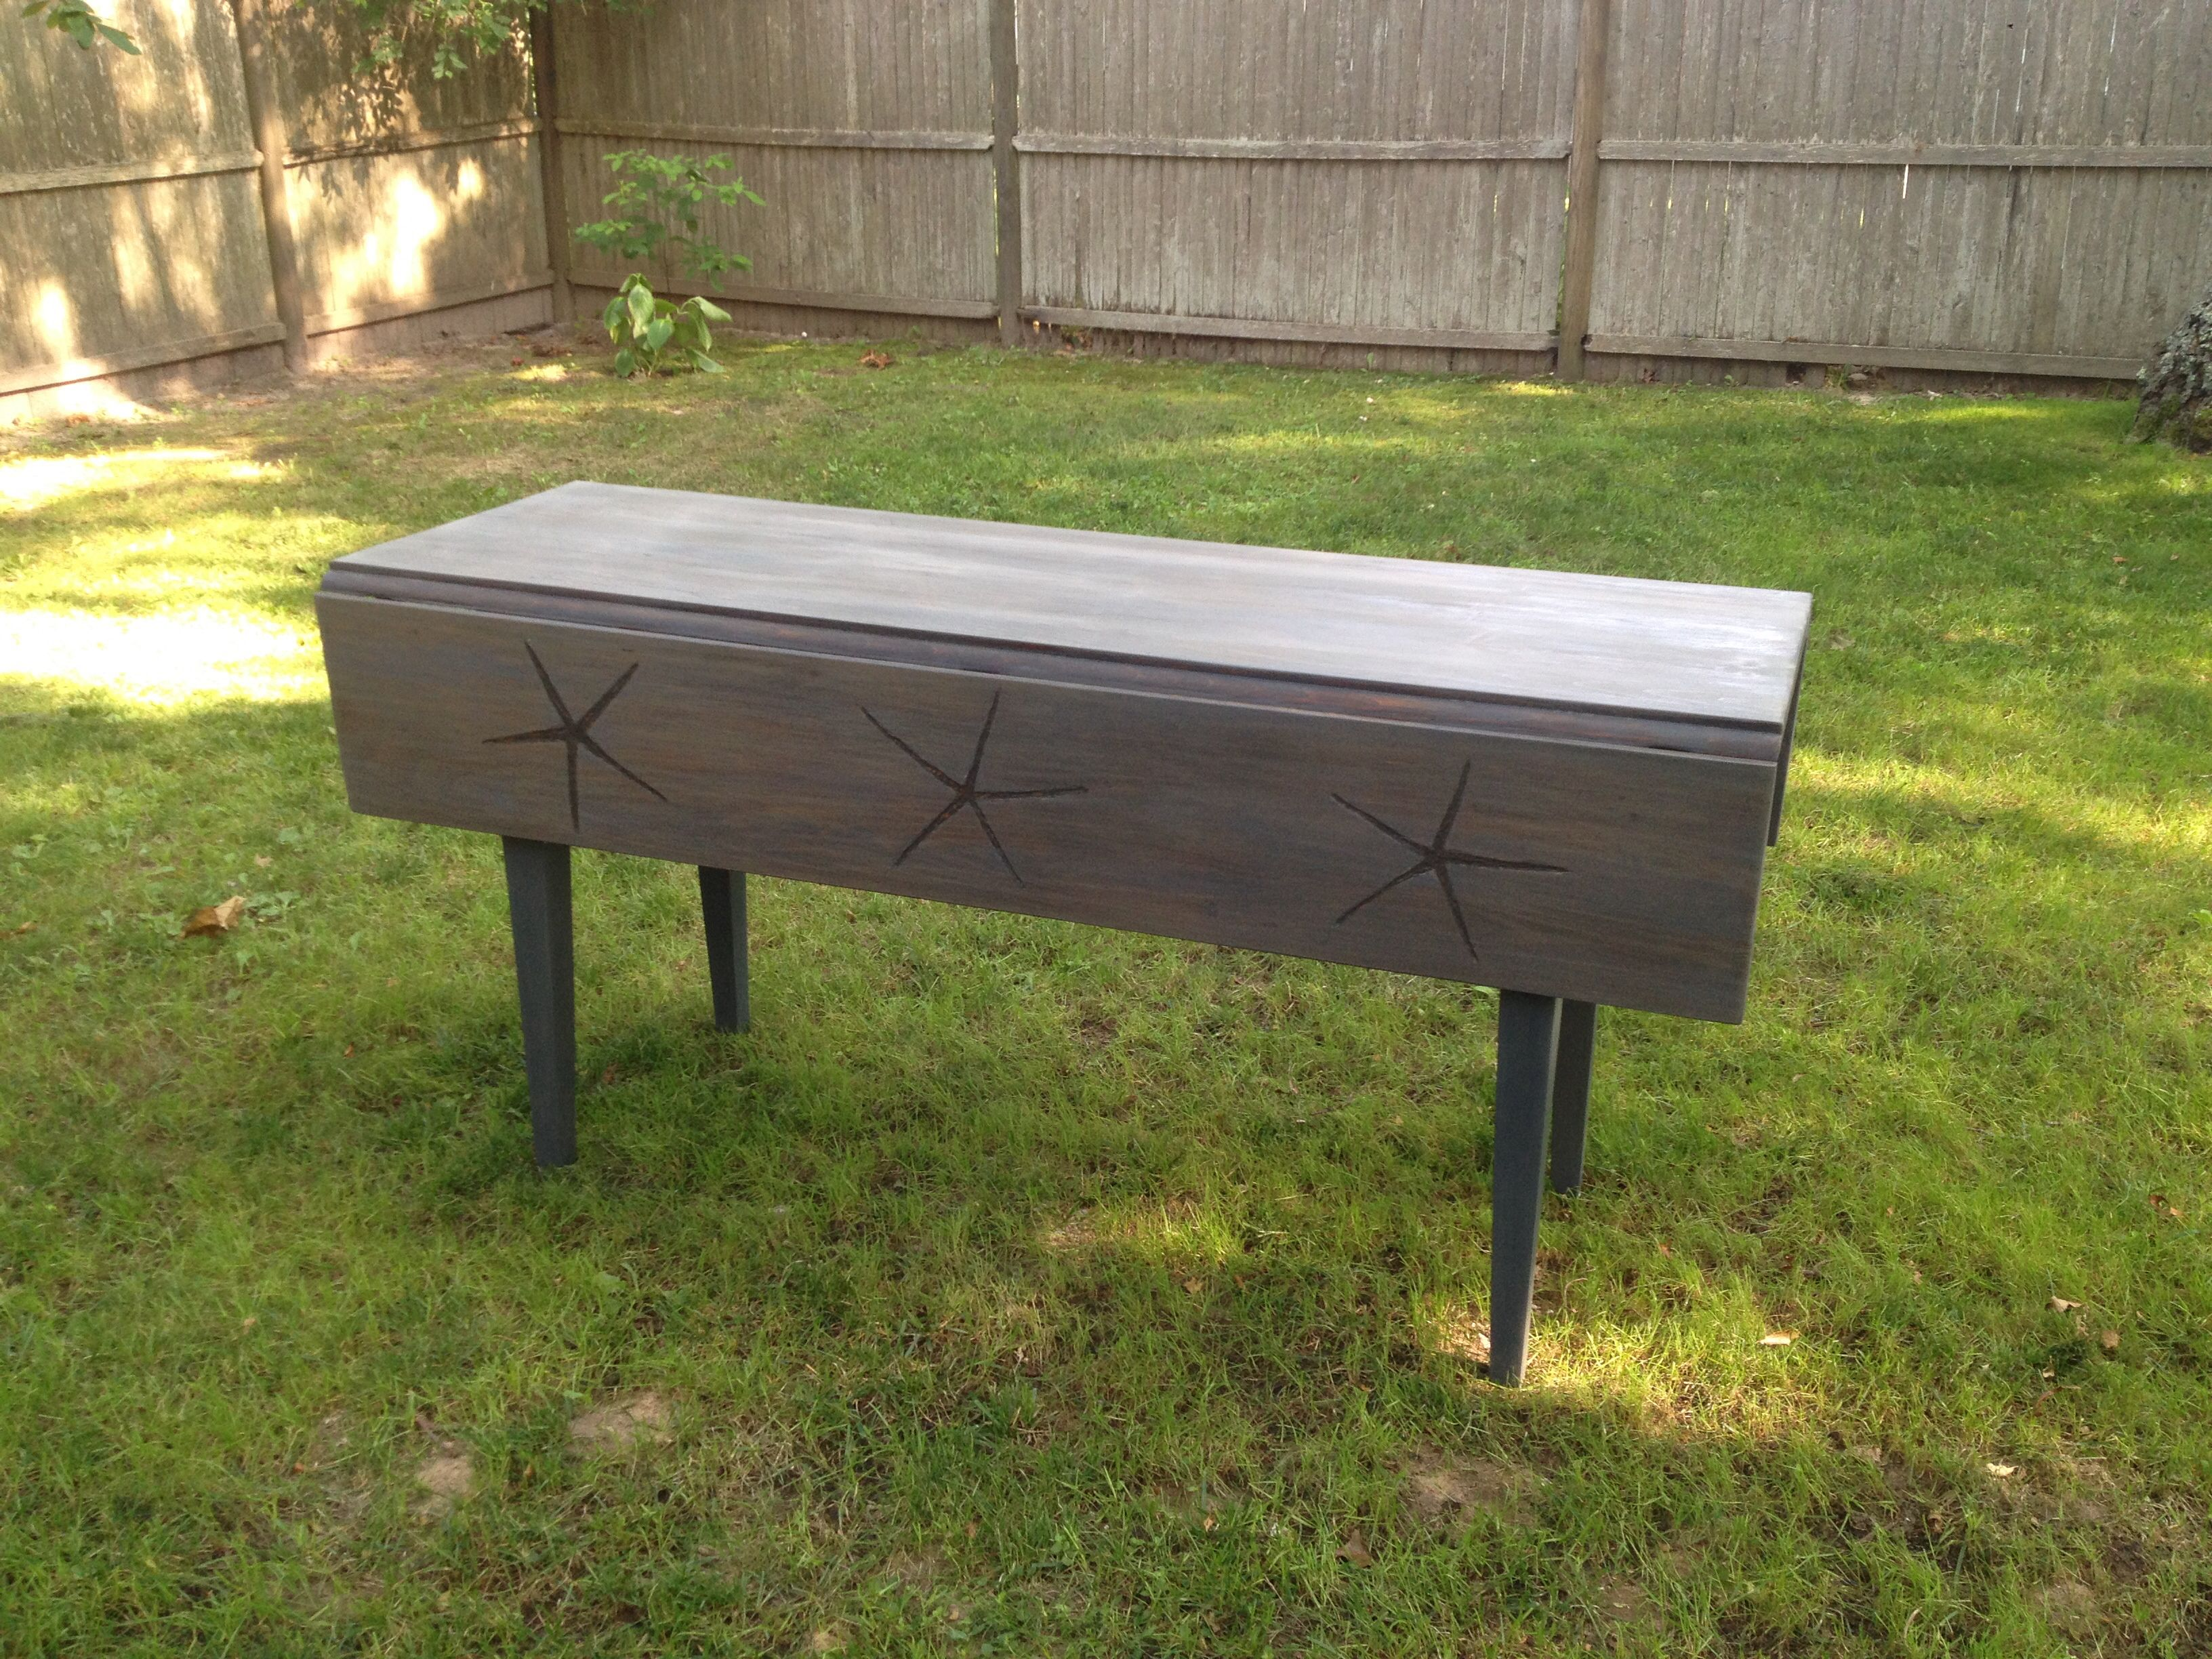 Starfish Rehabbed 5 Ft Drop Leaf Table For Sale Drop Leaf Table Hand Painted Furniture Leaf Table